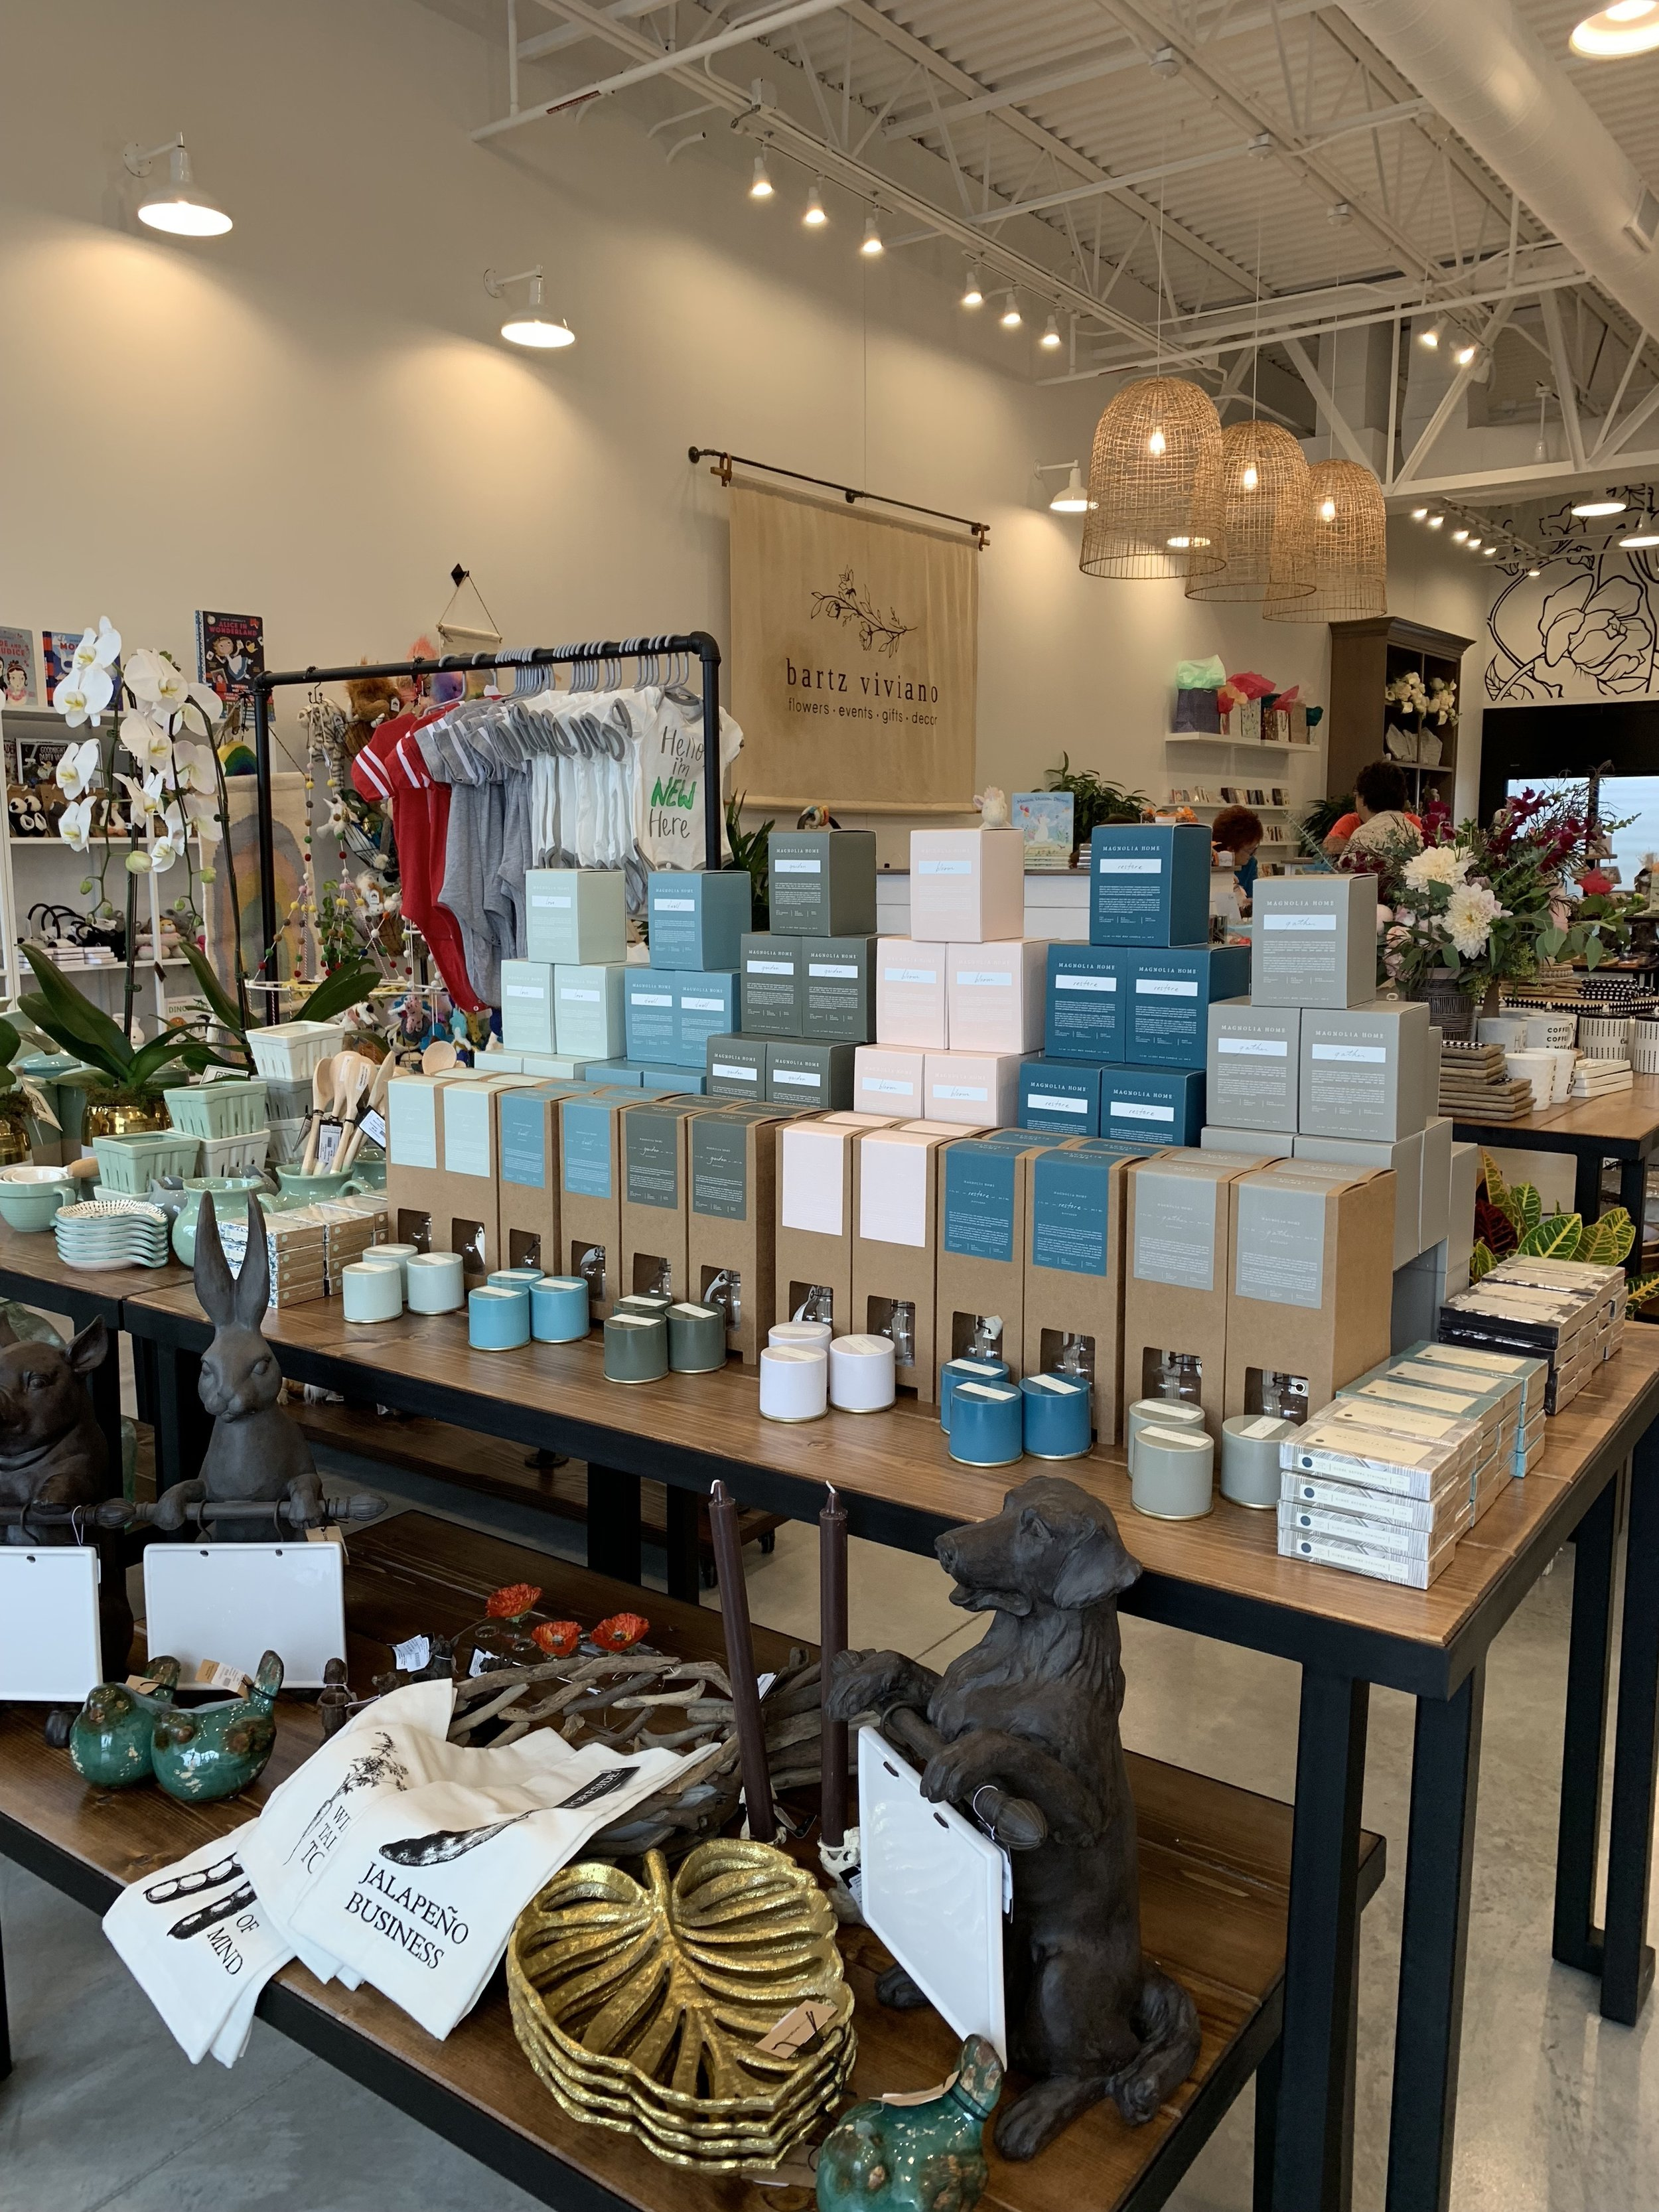 Magnolia brand candles at Bartz Viviano